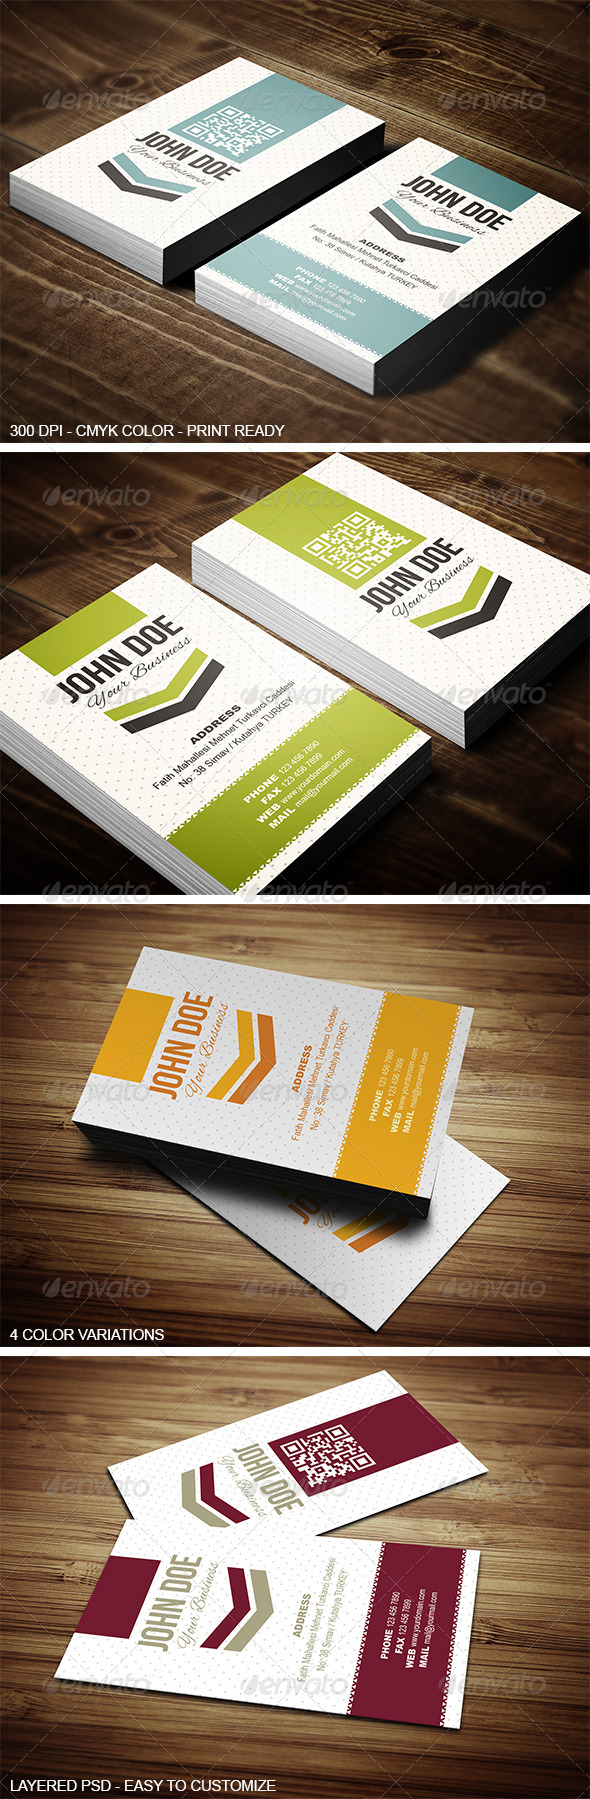 GraphicRiver Vertical Business Card 02 5174775